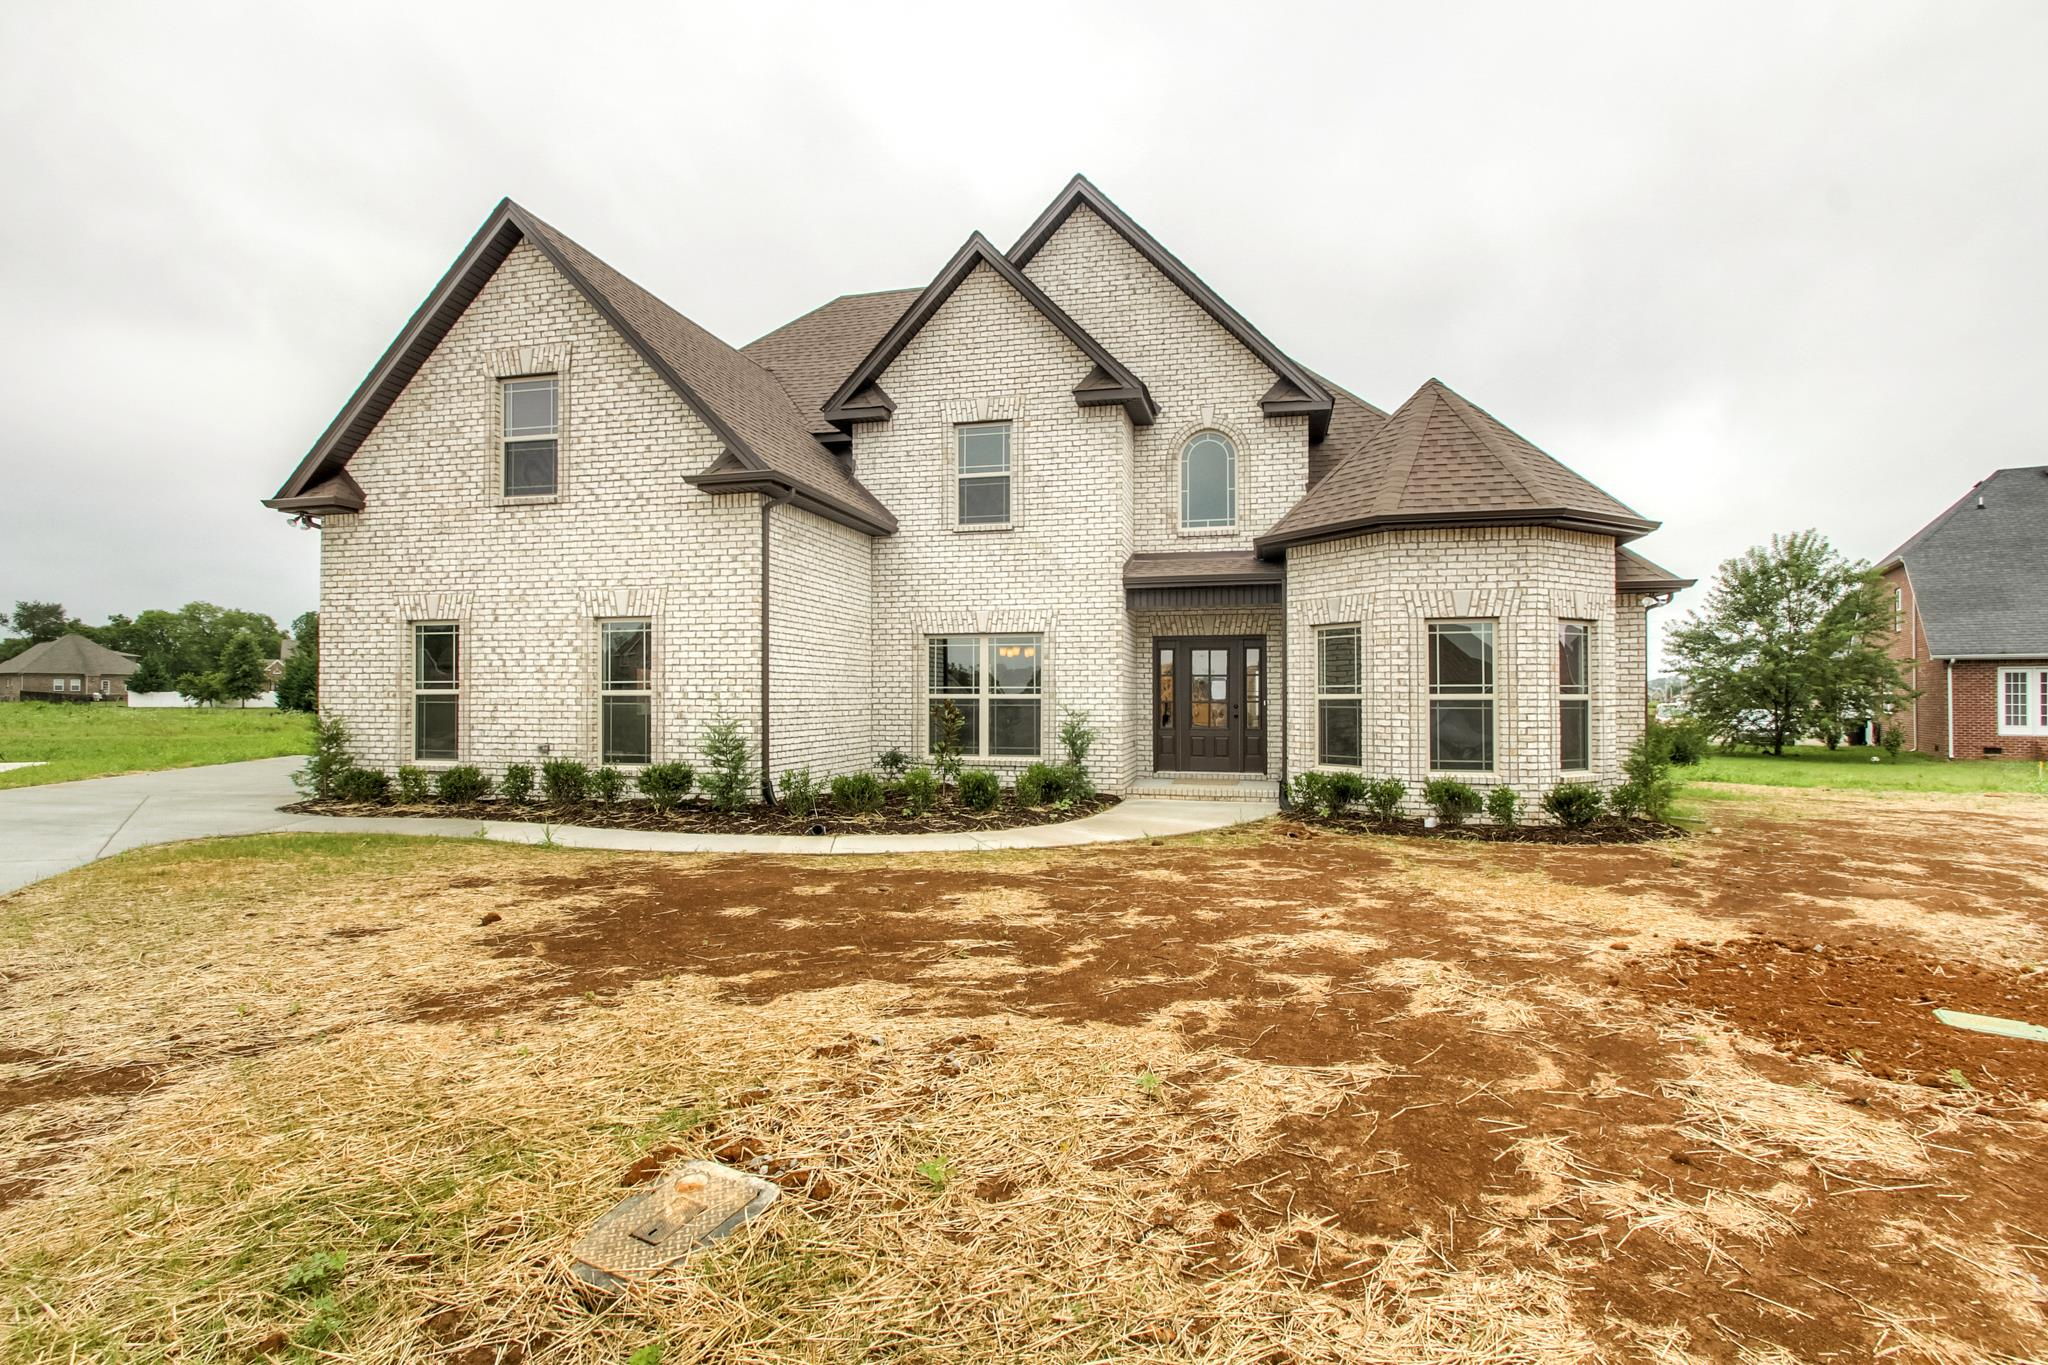 1029 Empire Blvd - Lot 14, Murfreesboro, TN 37130